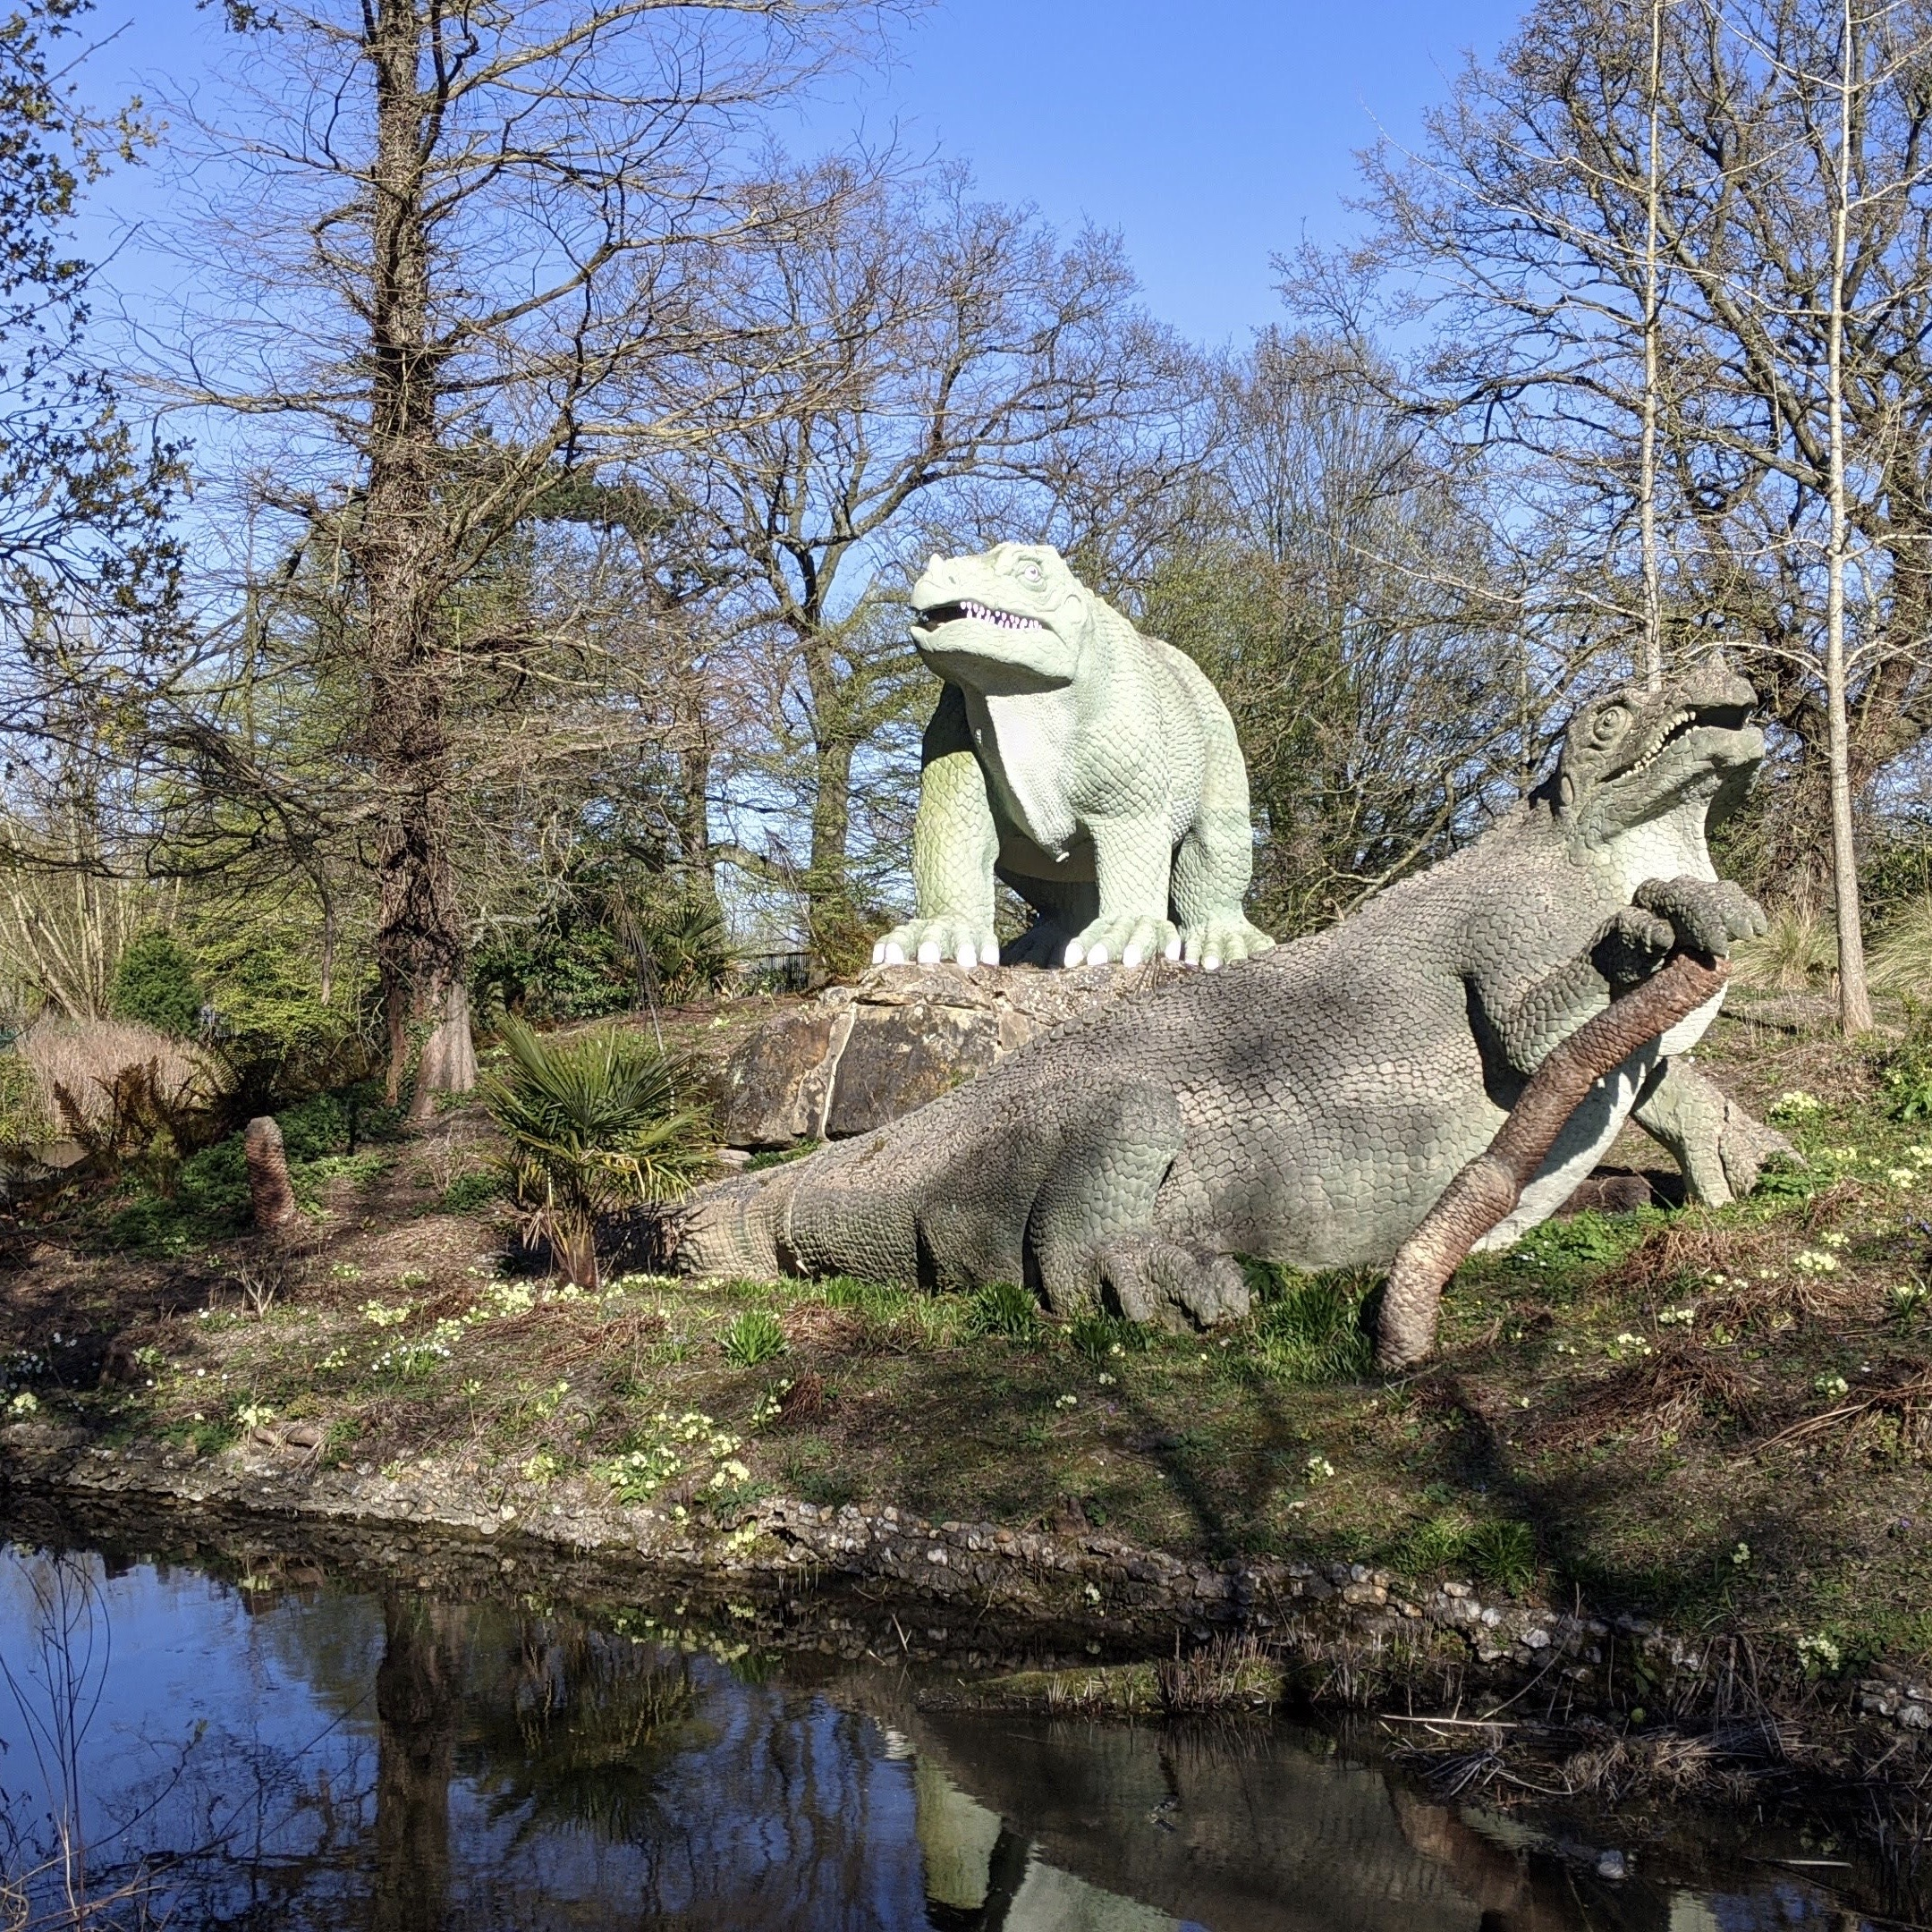 Dinosaur Lake, Crystal Palace, London, UK on 5th April 2020 – by Sam Clements and Louise Owen